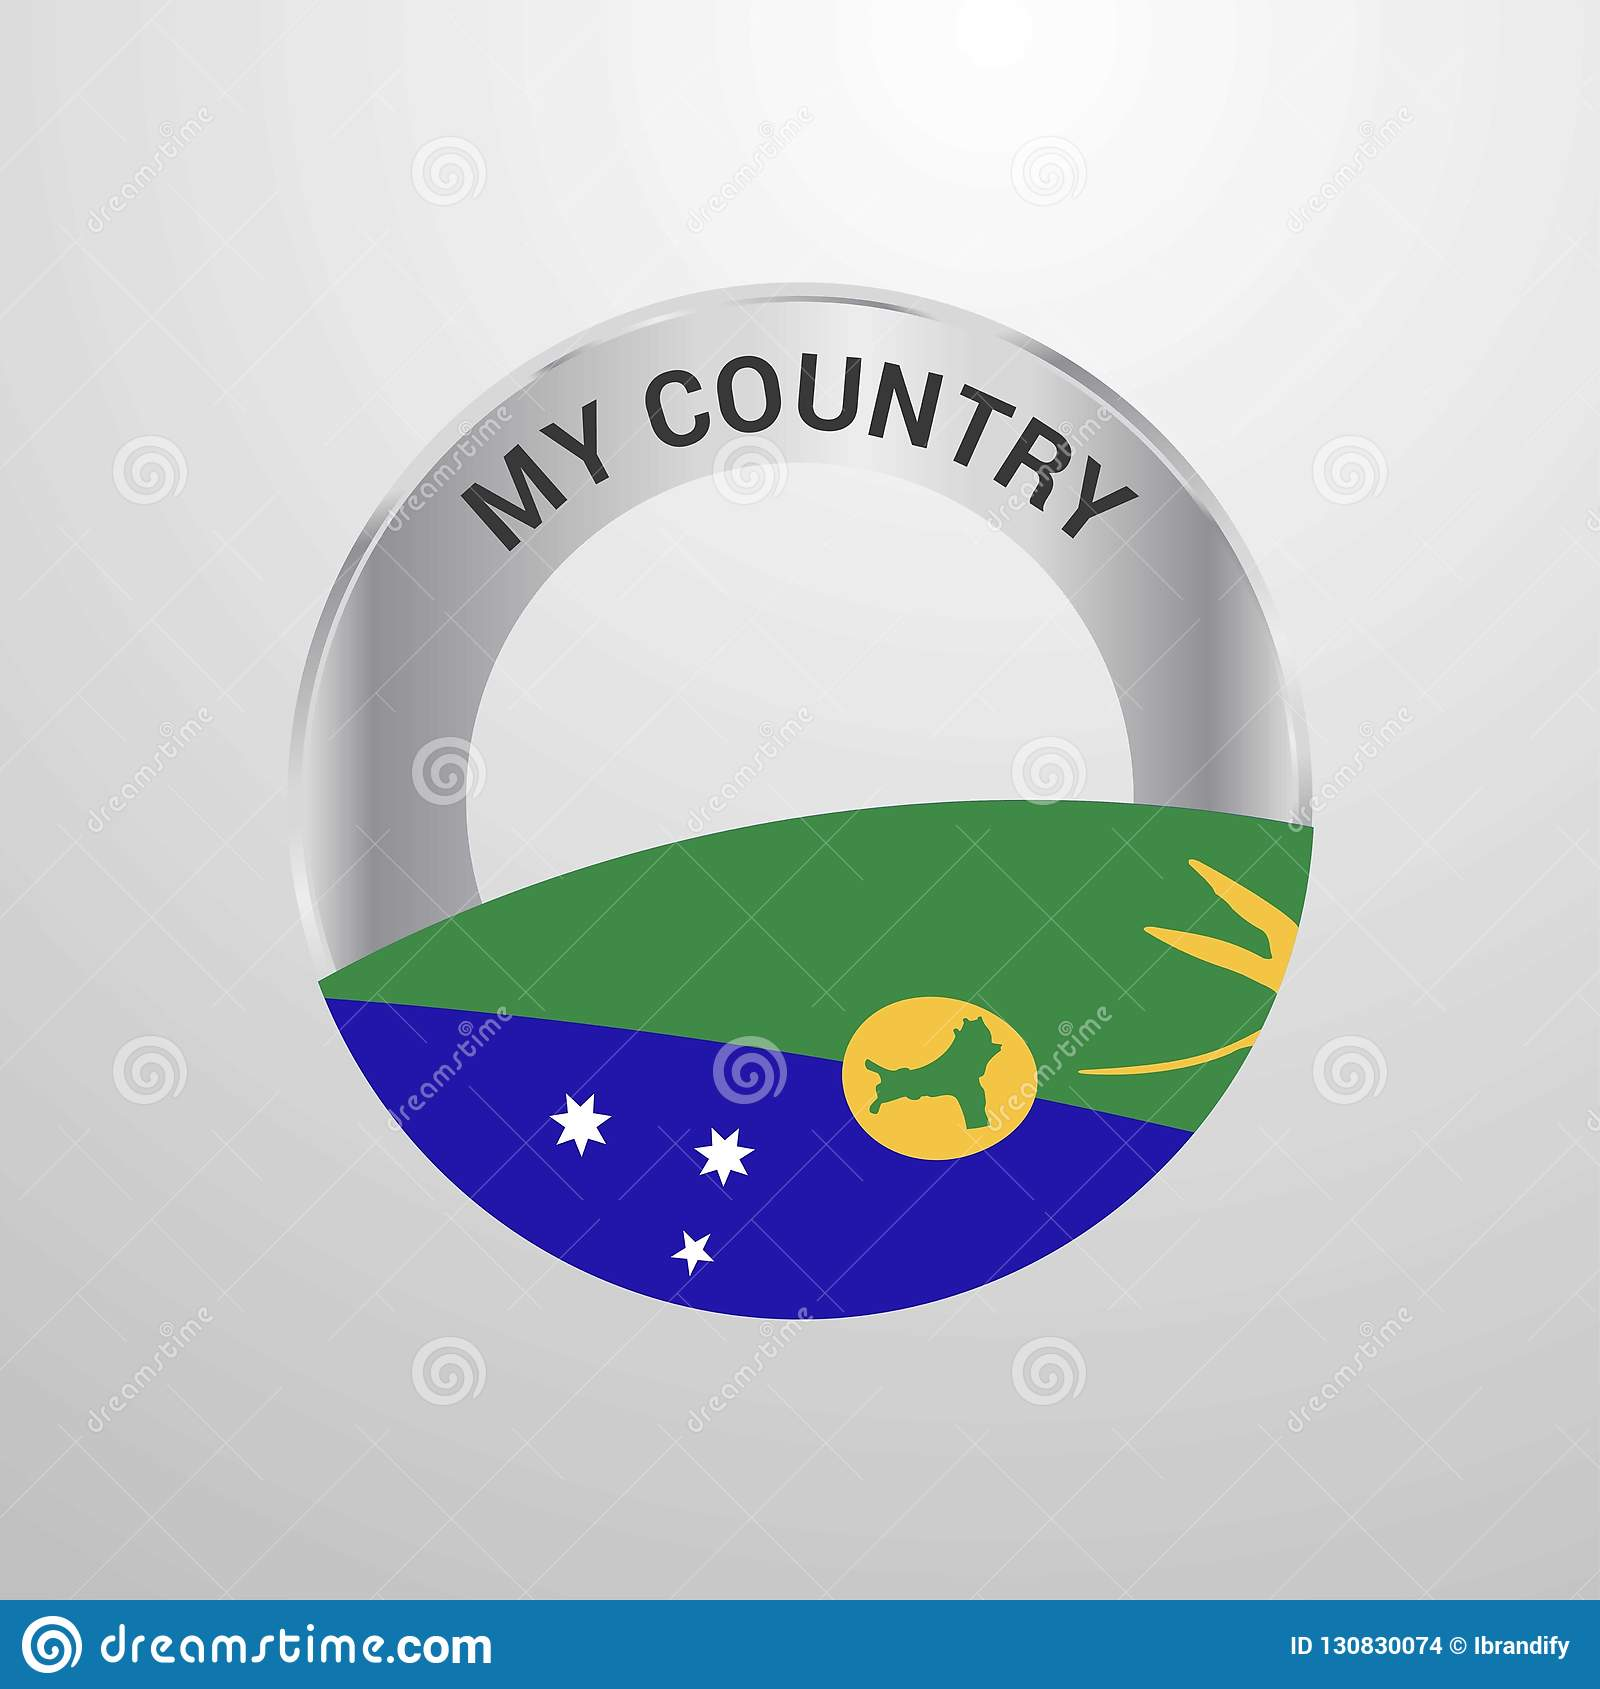 Christmas Island My Country Flag Badge Stock Vector - Illustration of national, design: 130830074